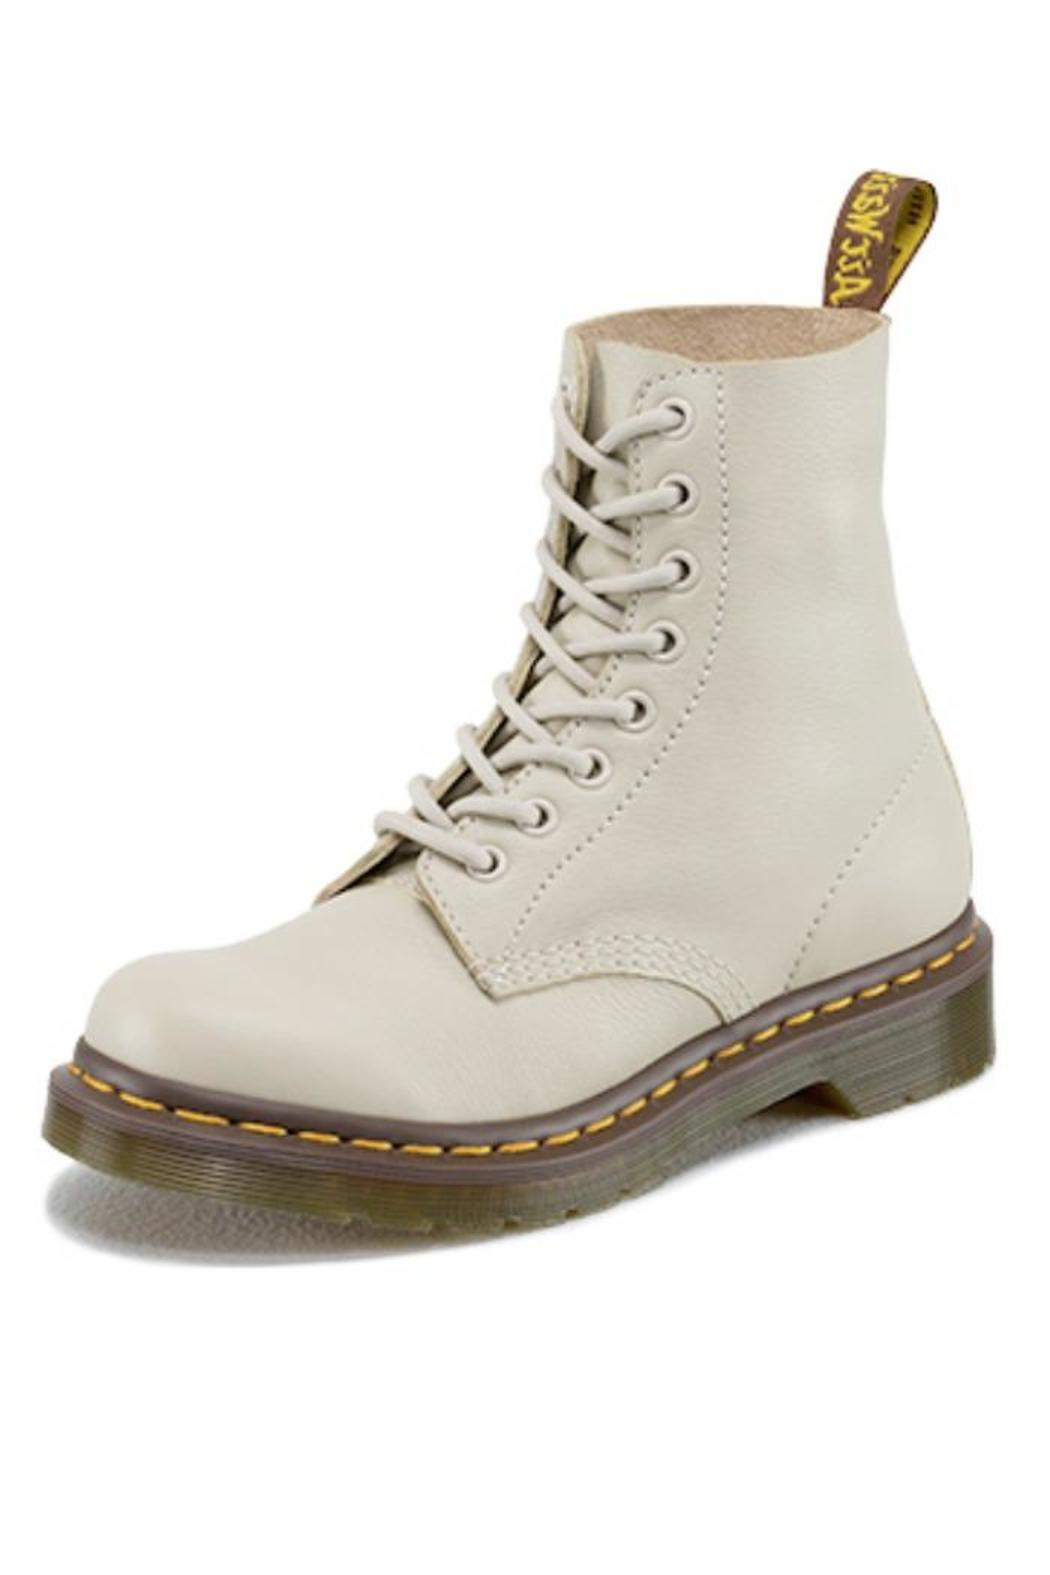 Shop for Dr Martens Shoes online at THE ICONIC. Enjoy fast shipping to Australia and New Zealand.